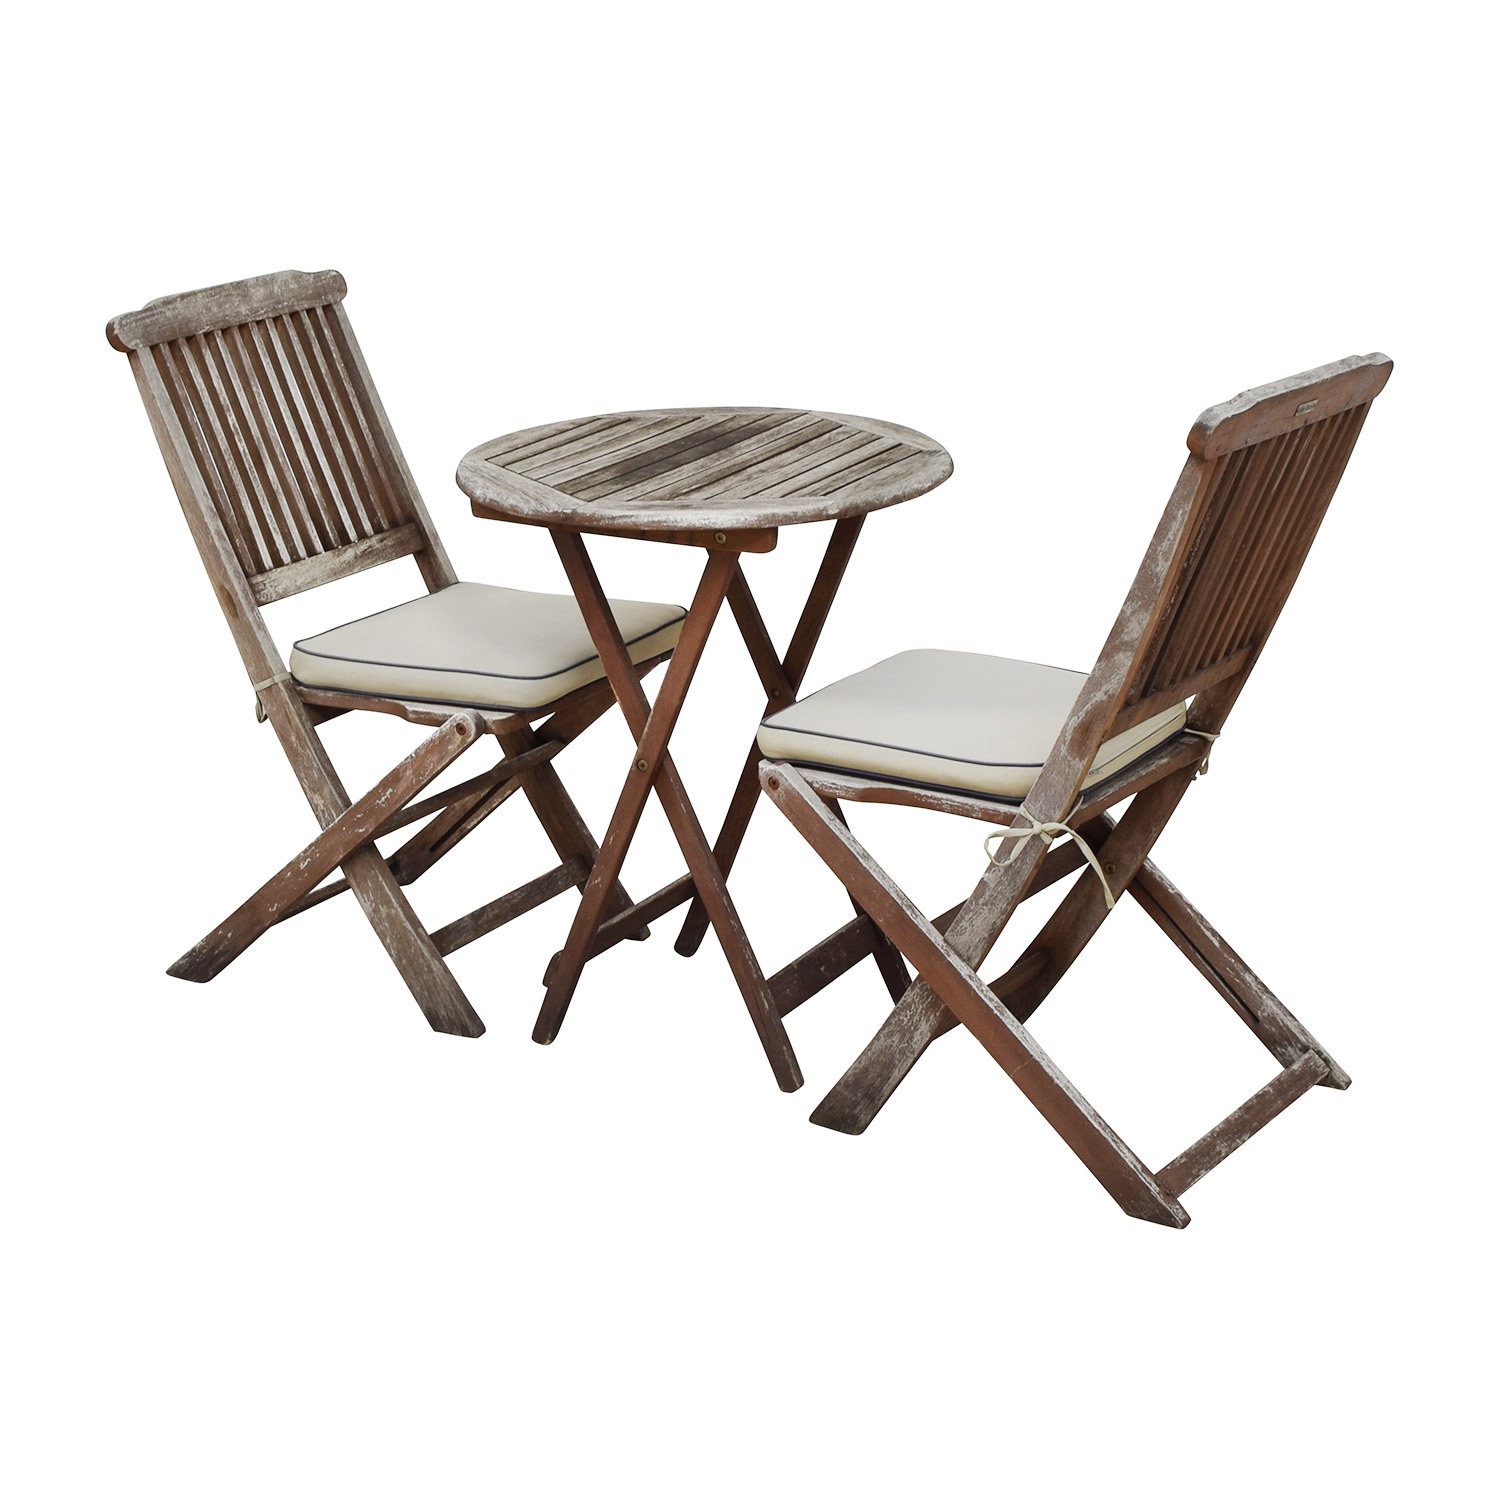 65 off outdoor interiors outdoor interiors rustic patio dining table and chairs tables. Black Bedroom Furniture Sets. Home Design Ideas